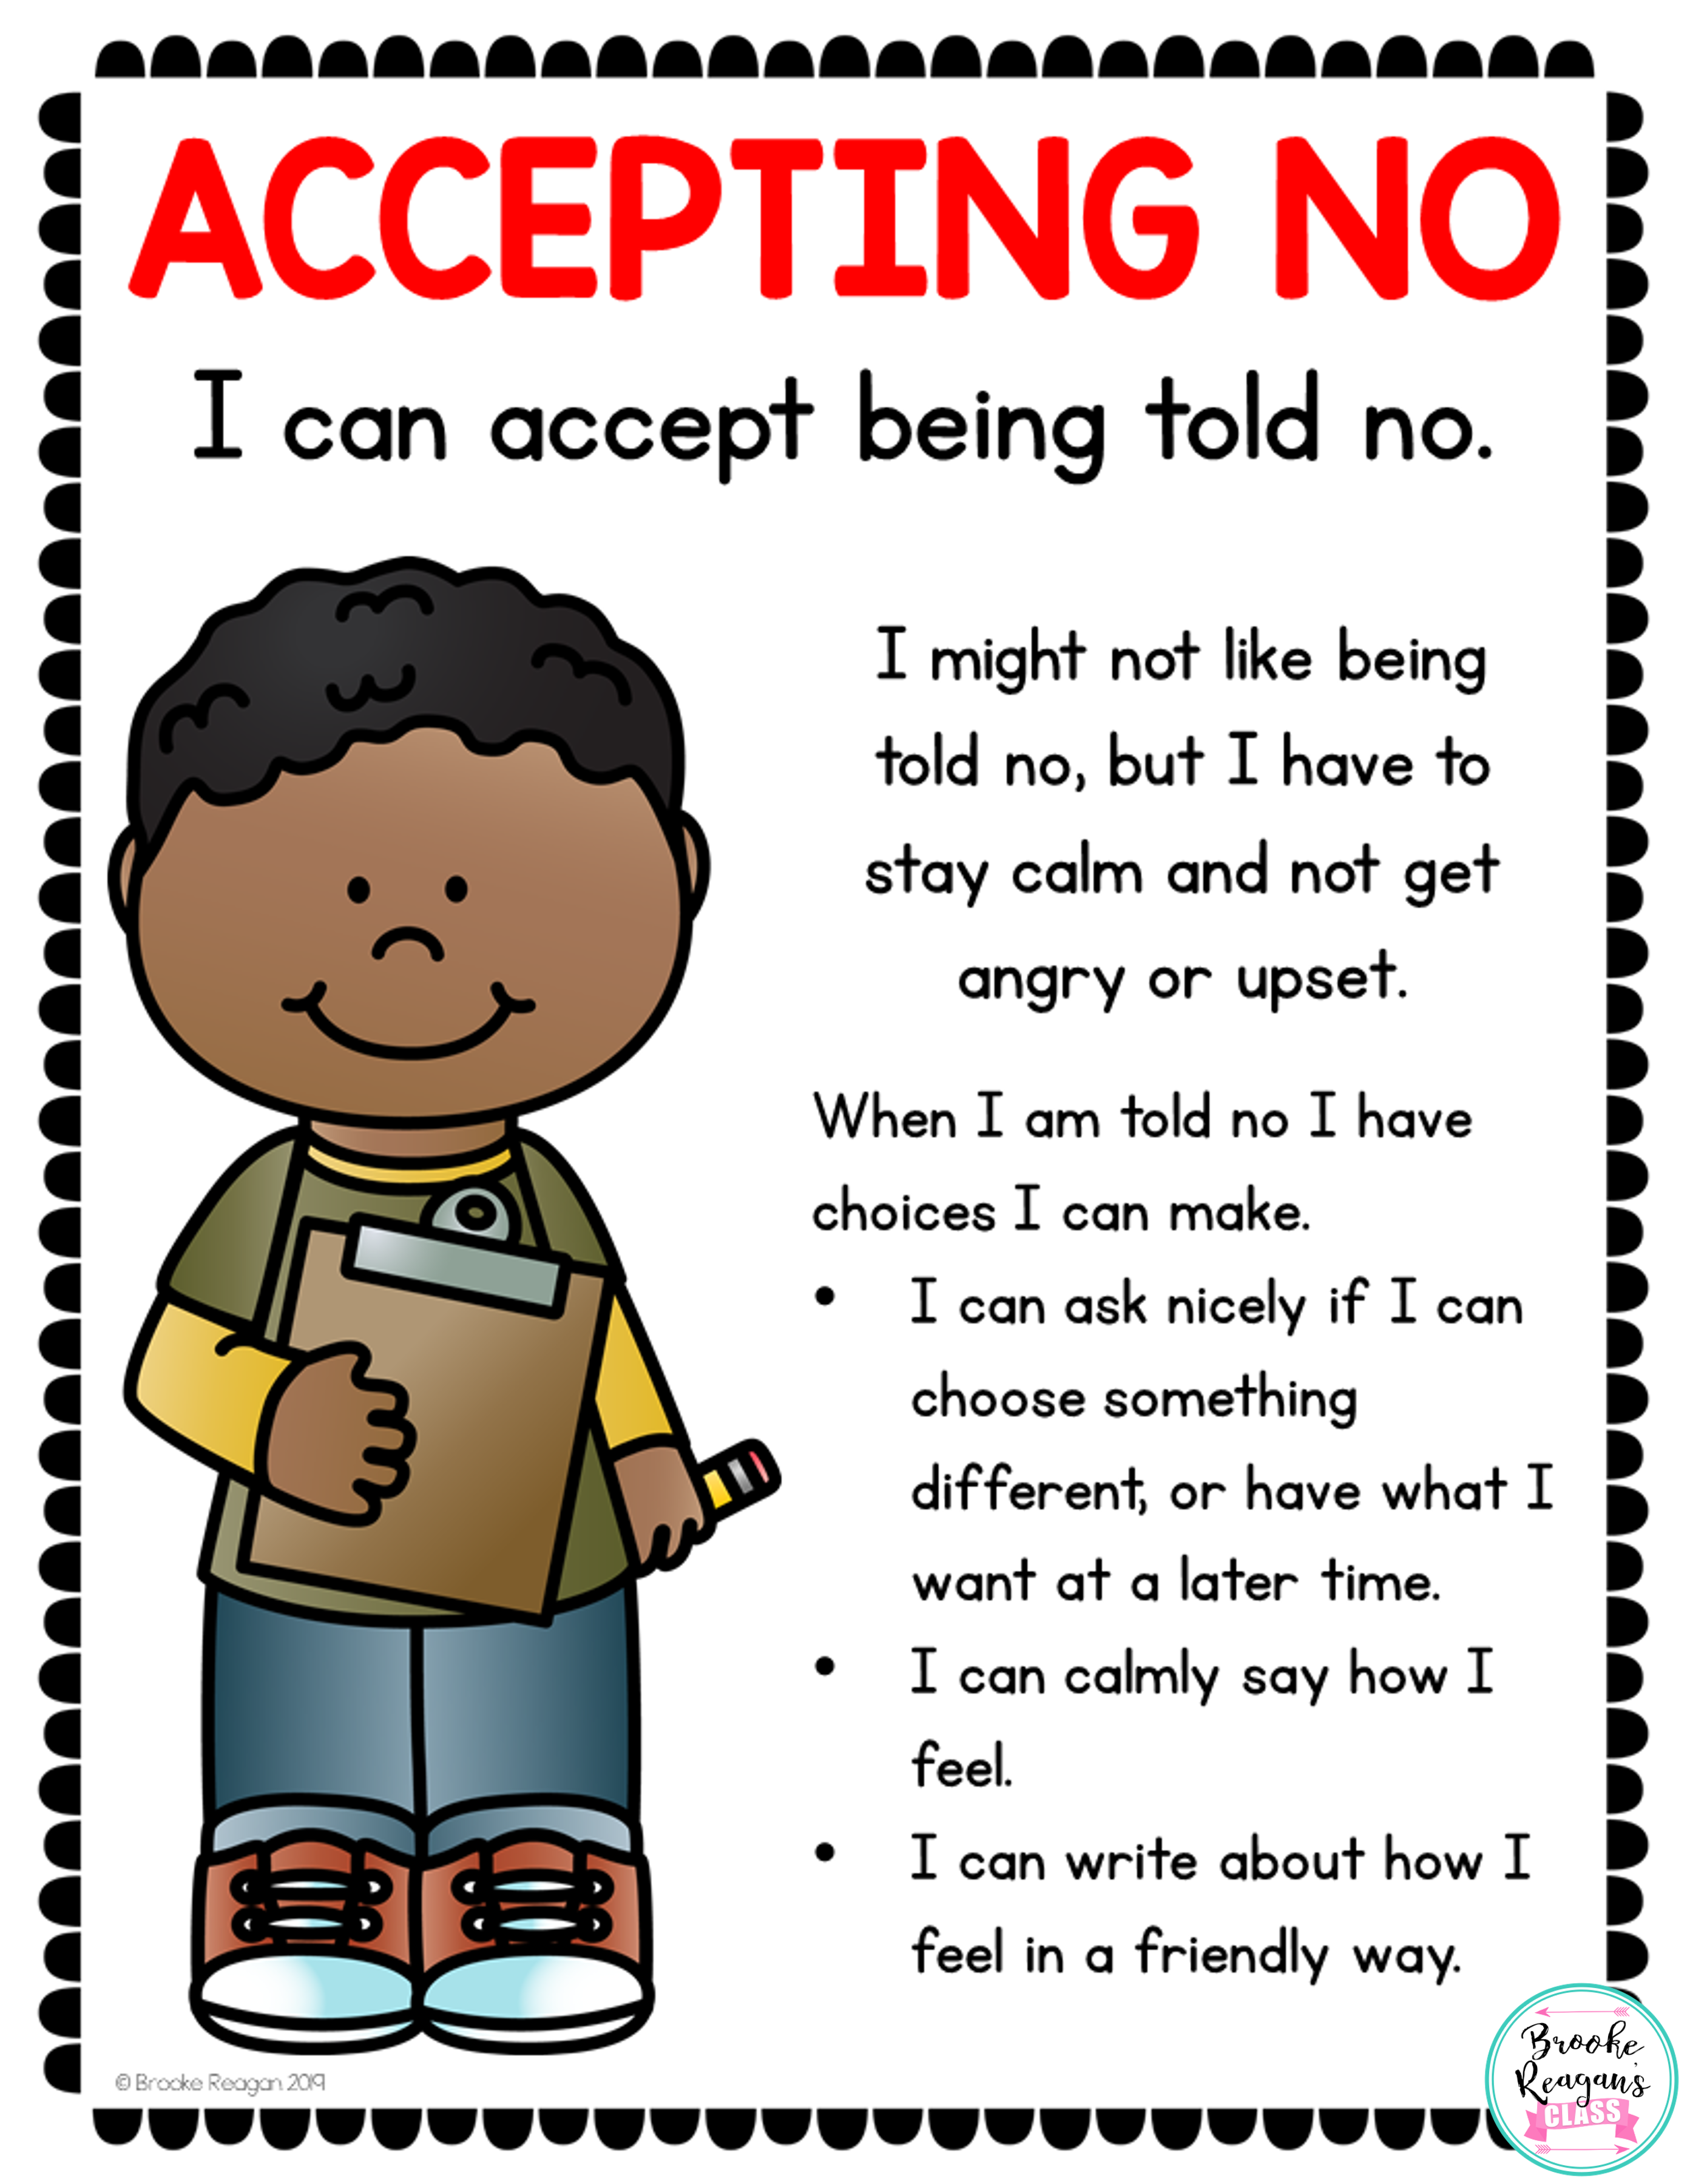 Social Skills Lesson Teaching Students About Accepting No